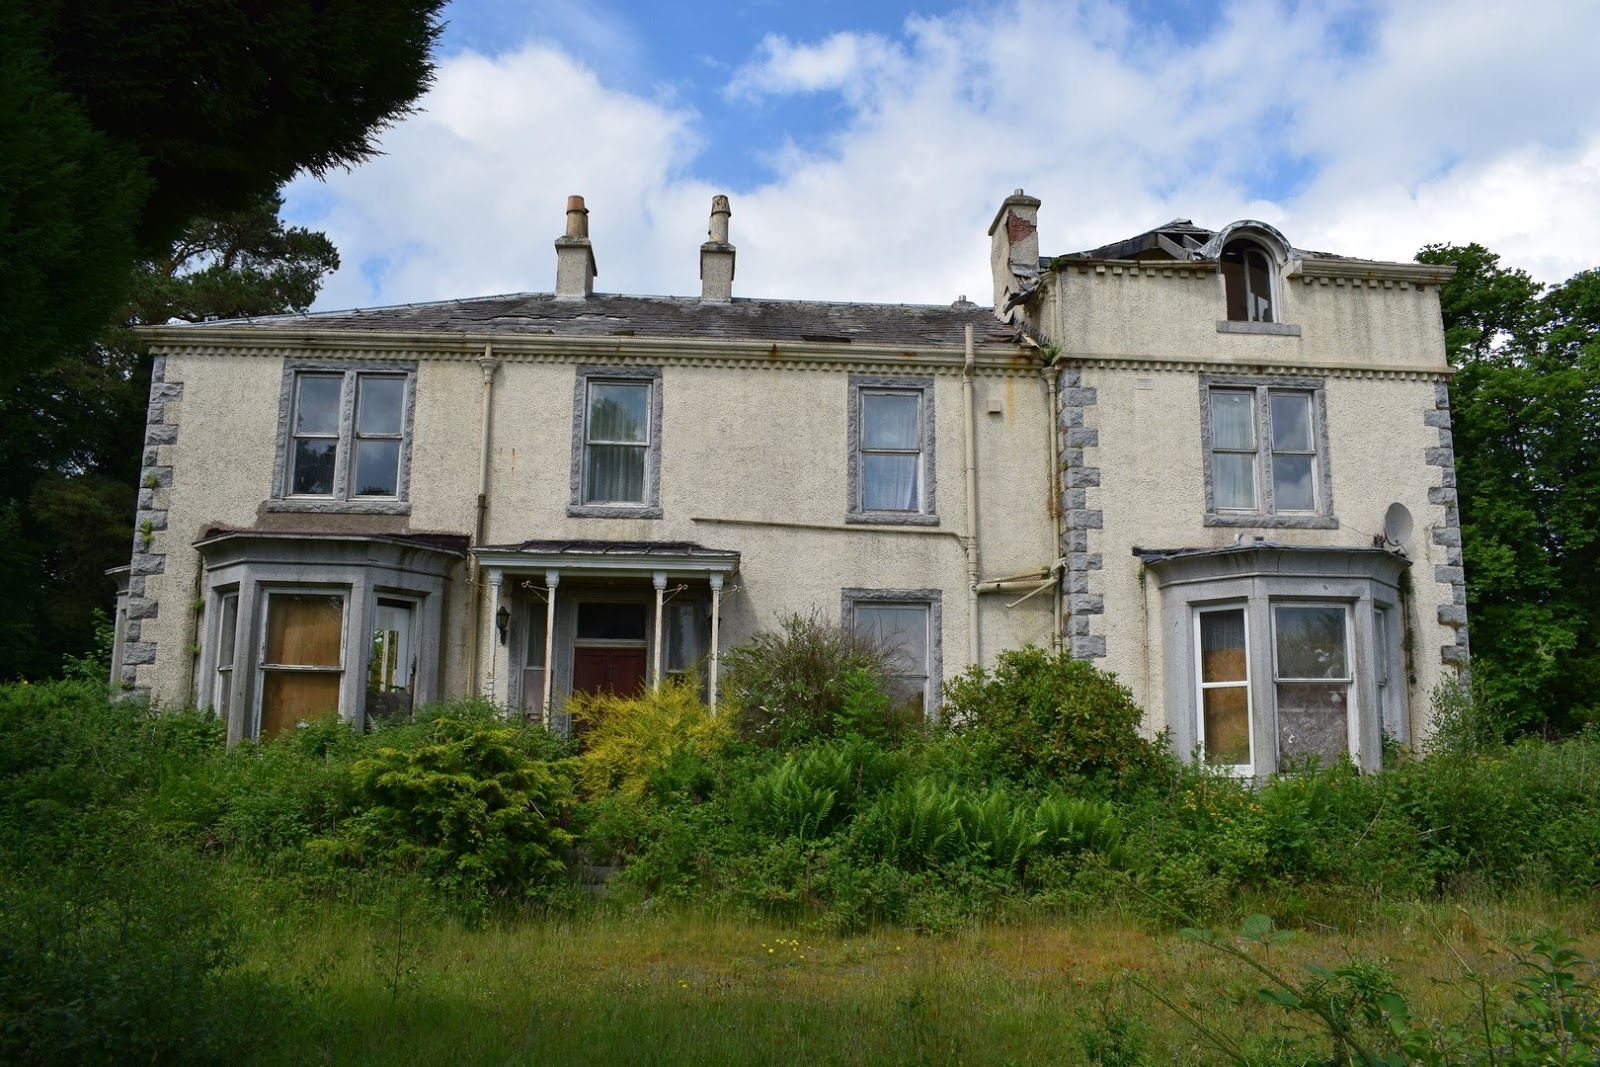 Property To Renovate In North Yorkshire